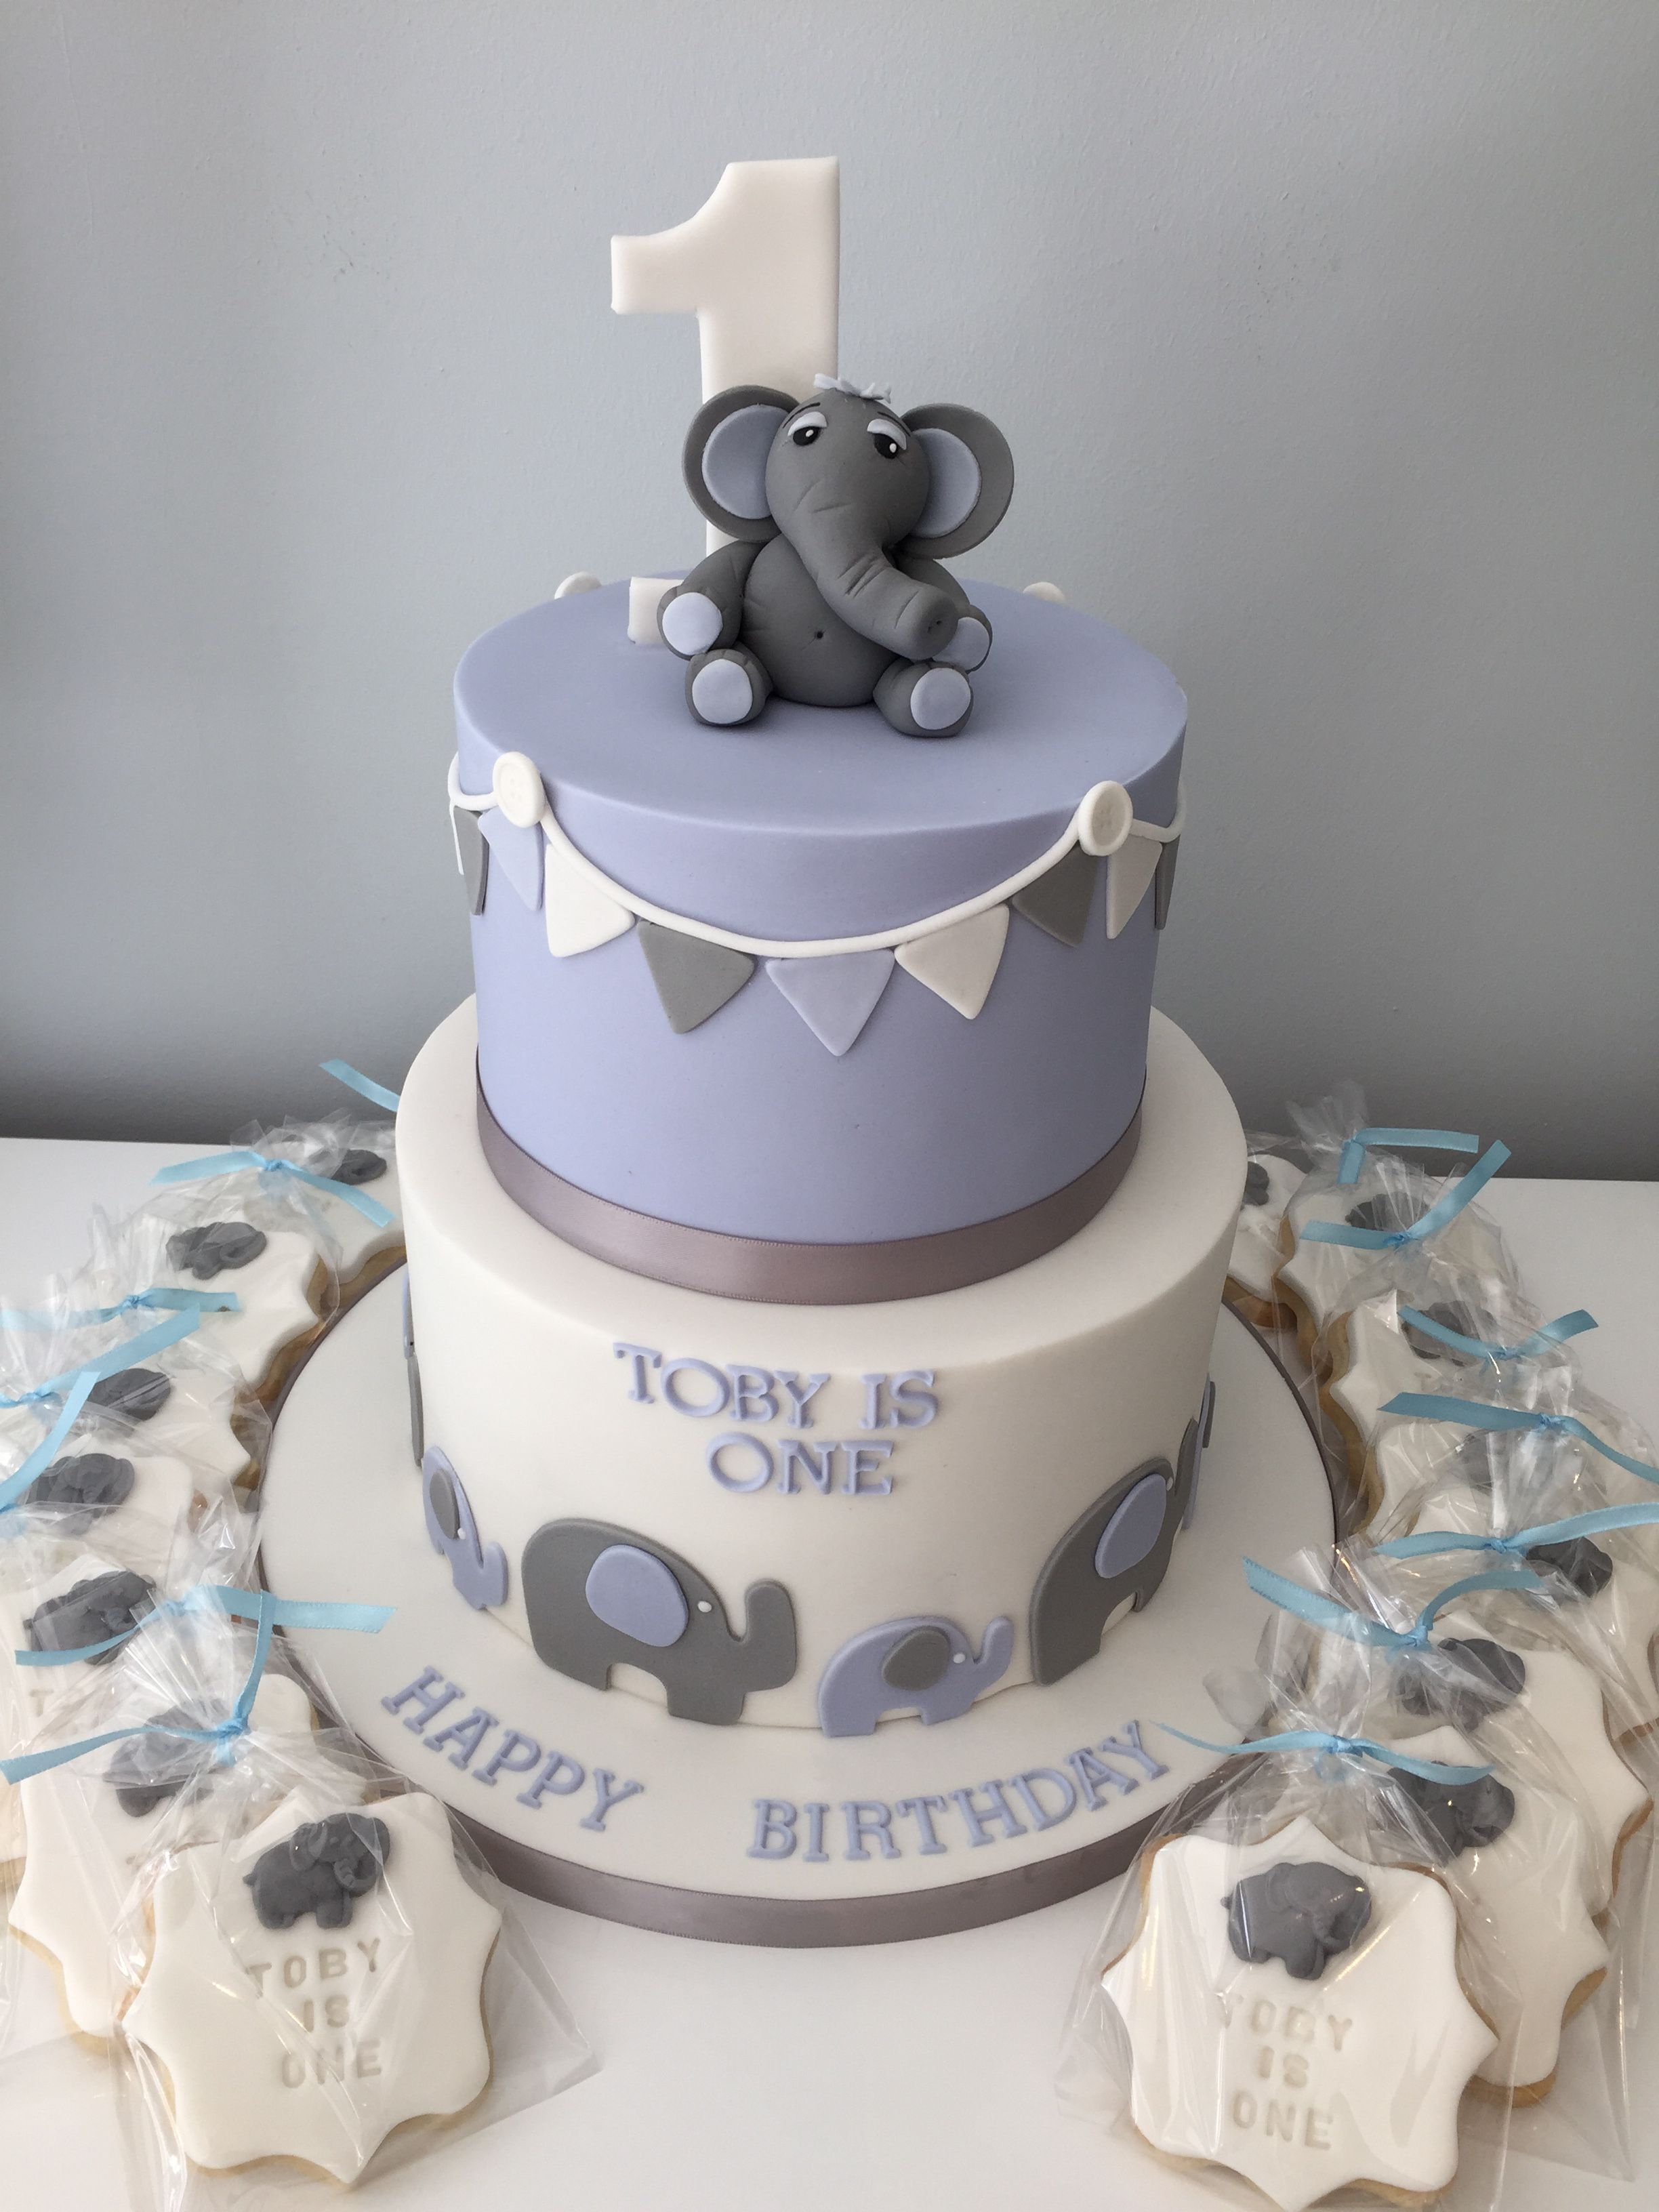 Blue And White Birthday Cake Two Tier First Birthday Cake With Elephant Theme Blue White And